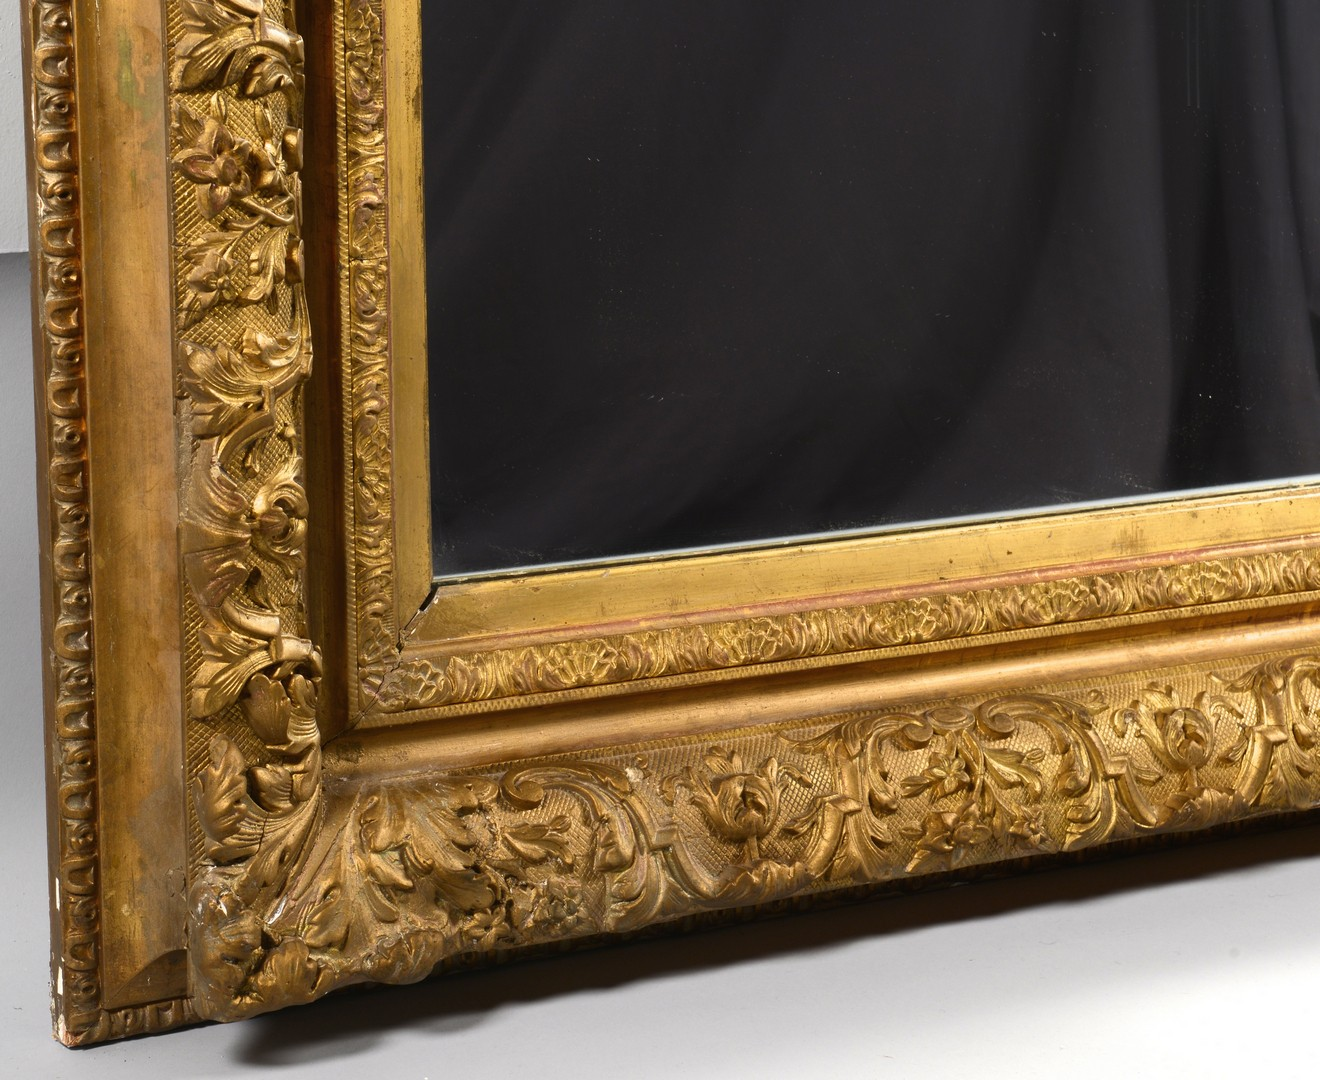 Lot 737: Large 19th Century Giltwood Mirror or Looking Glas